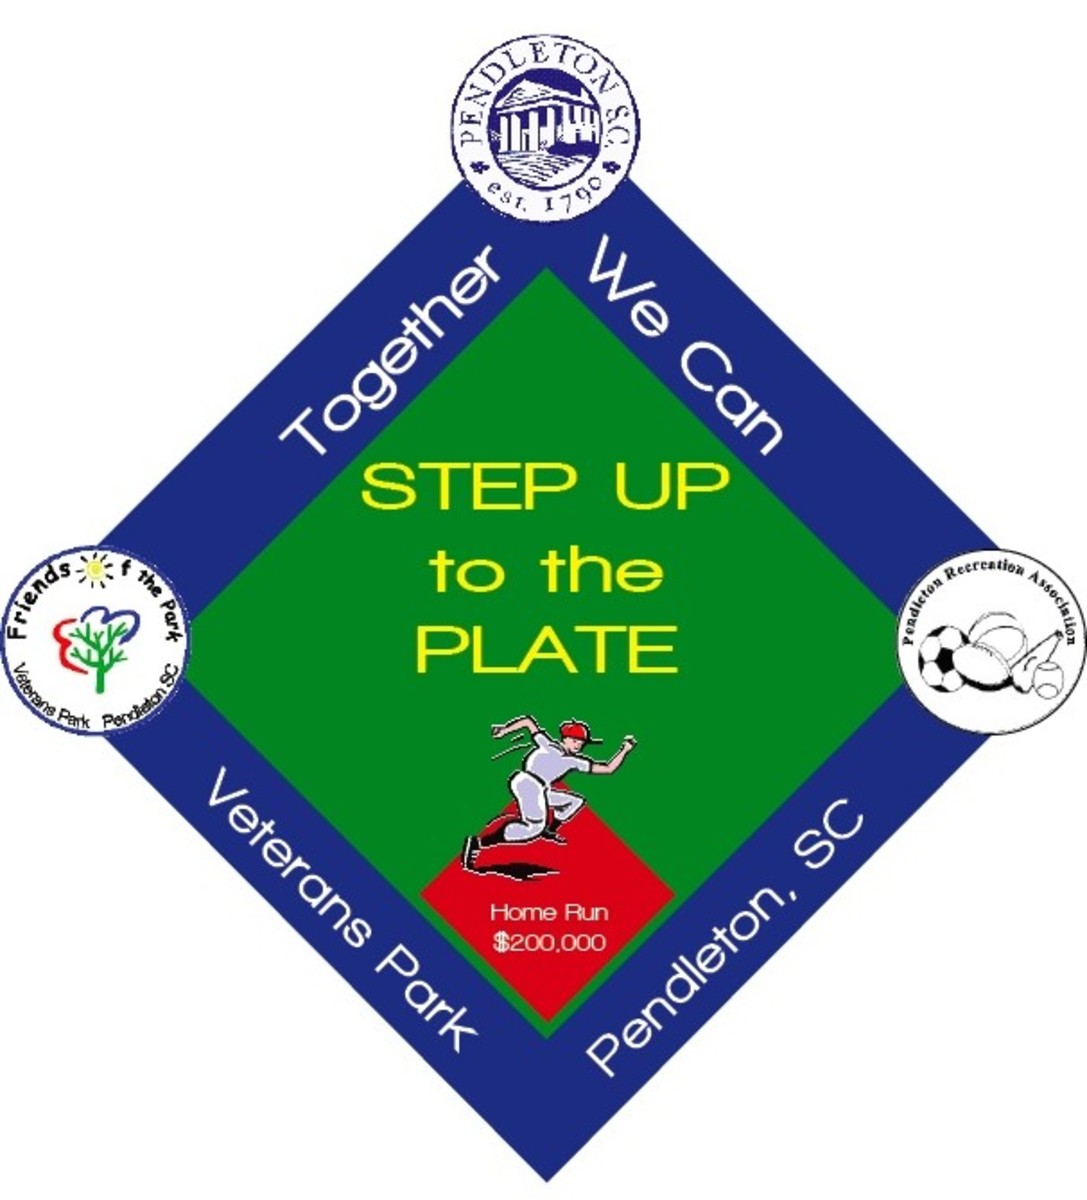 Photo Credit: Step Up To The Plate Logo by Lynne Parker Graphics